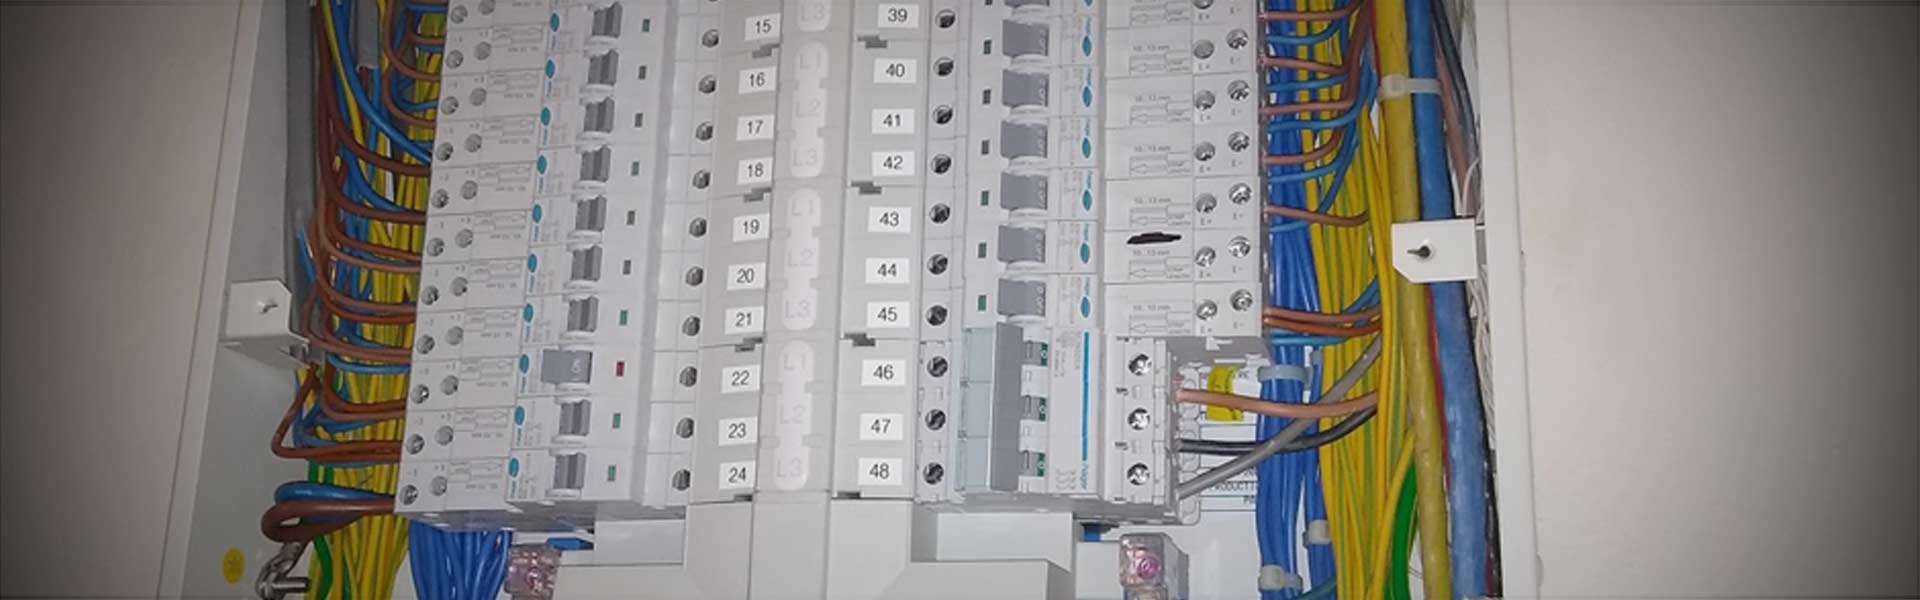 A commercial 3-phase consumer unit